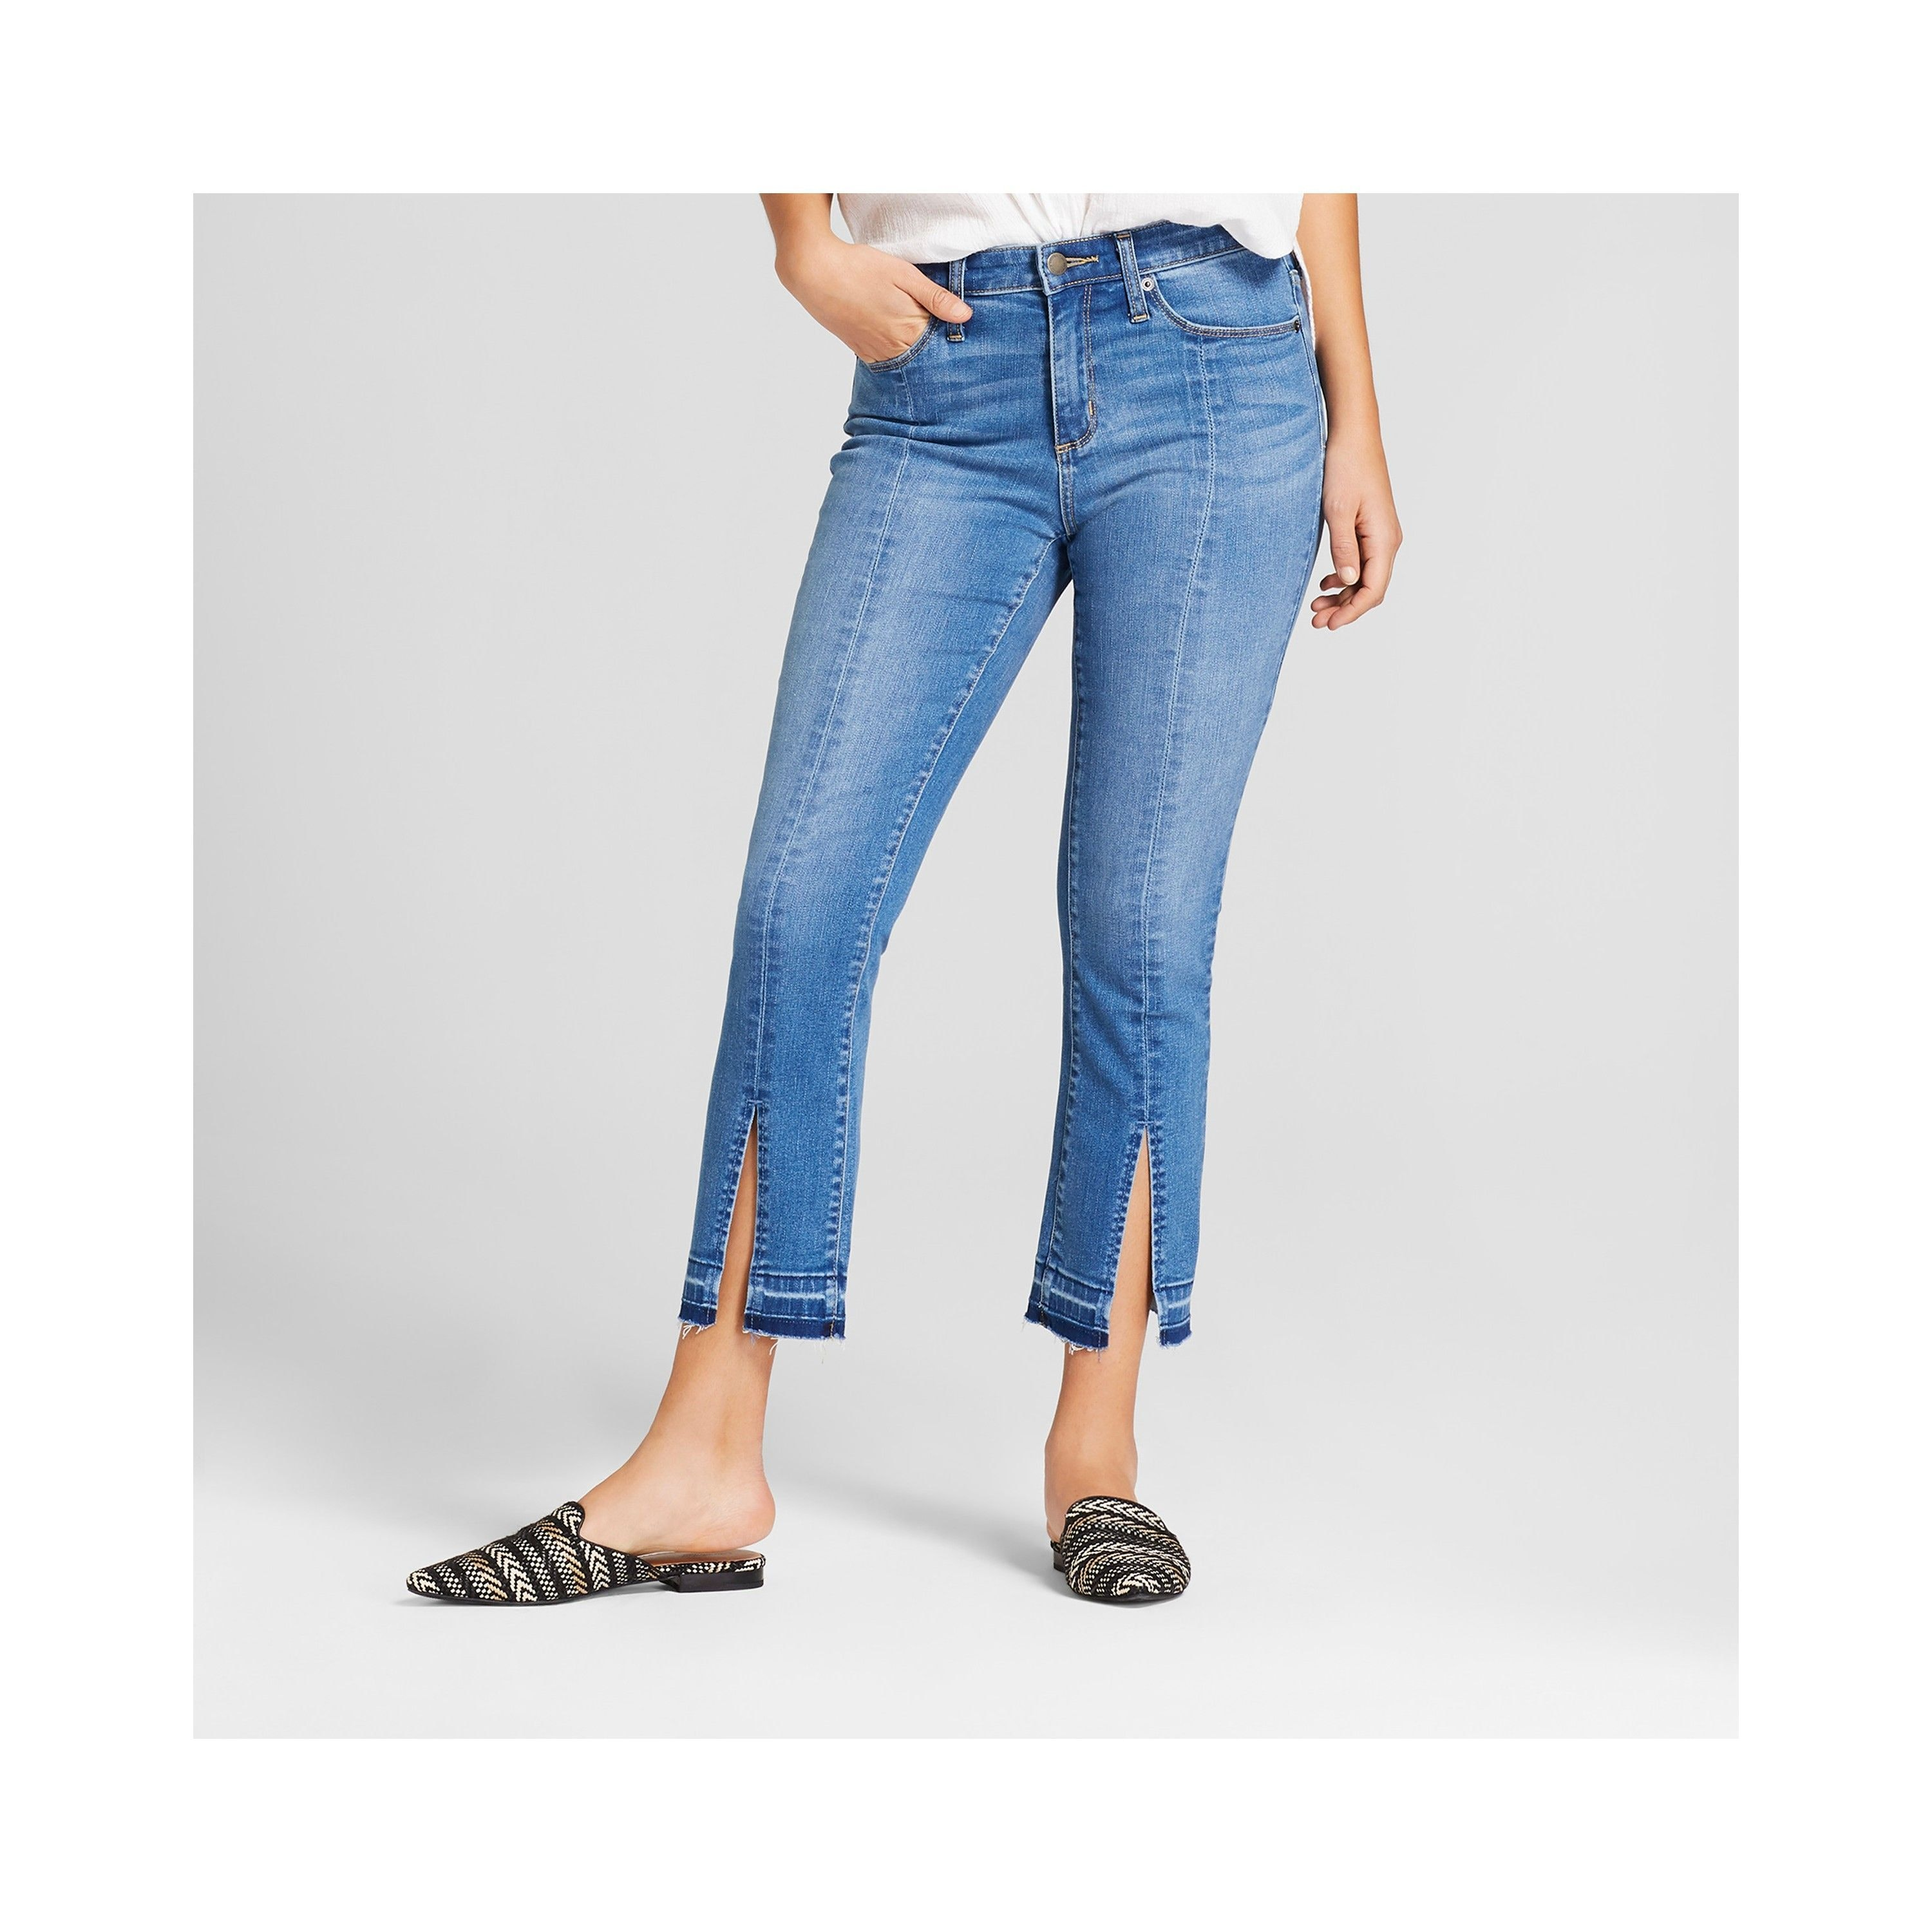 5df7cef787240 This Is What Target's Universal Thread Denim Looks Like On 15 Different  Body Types